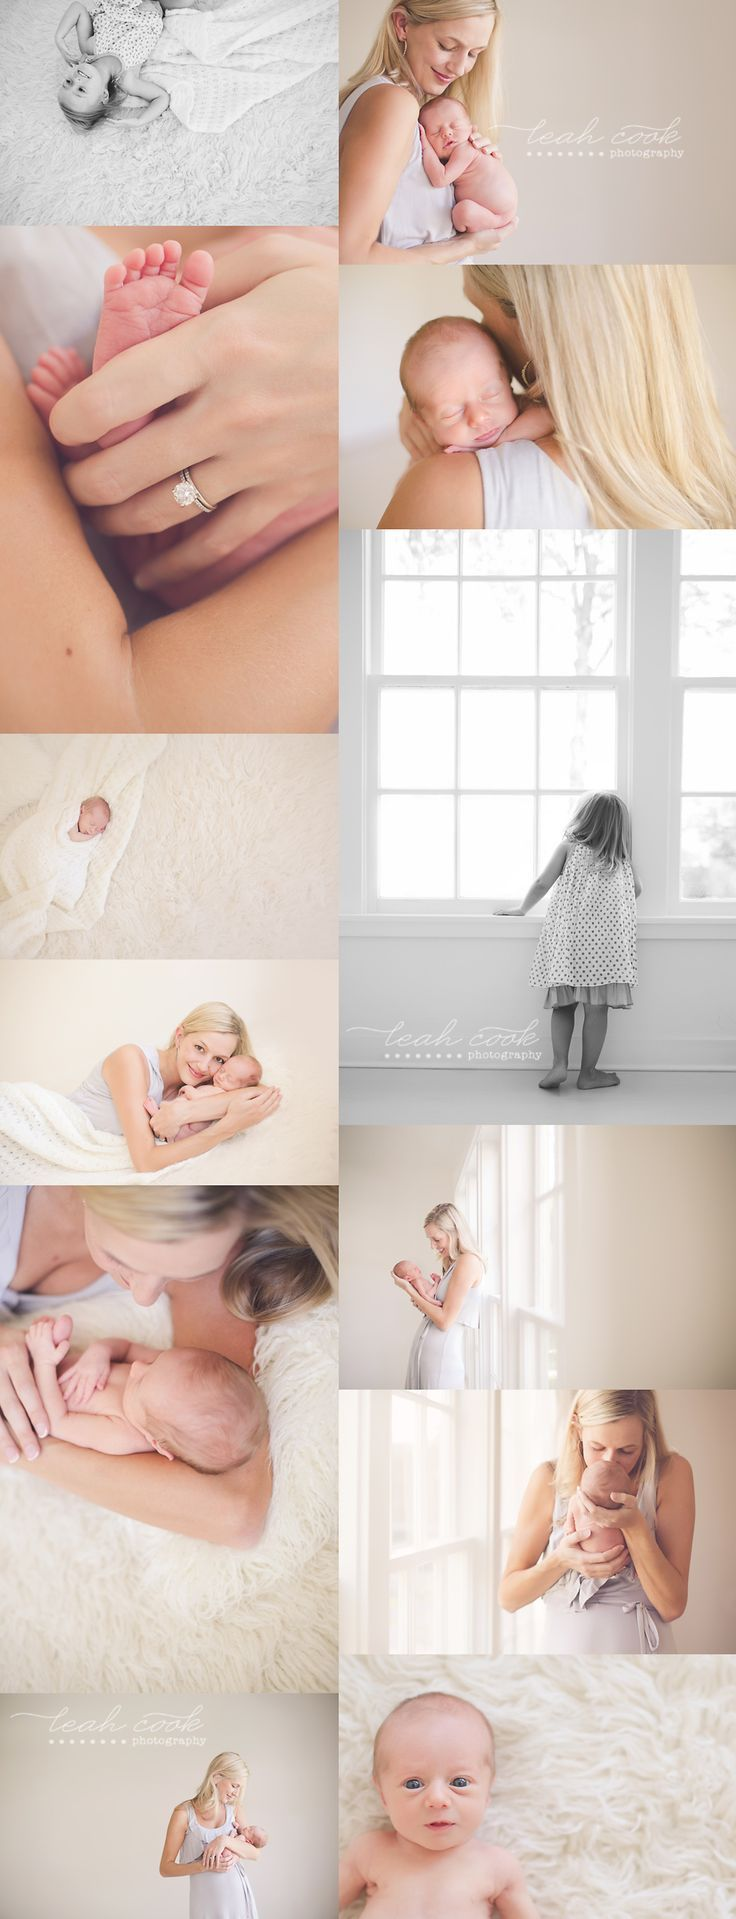 Neutral colors photograph perfectly for newborn sessions and lets us focus on the baby! lila   dallas newborn photographer » Dallas Lifestyle Newborn, Baby, Family, Children's + Maternity Photographer   Leah Cook Photography